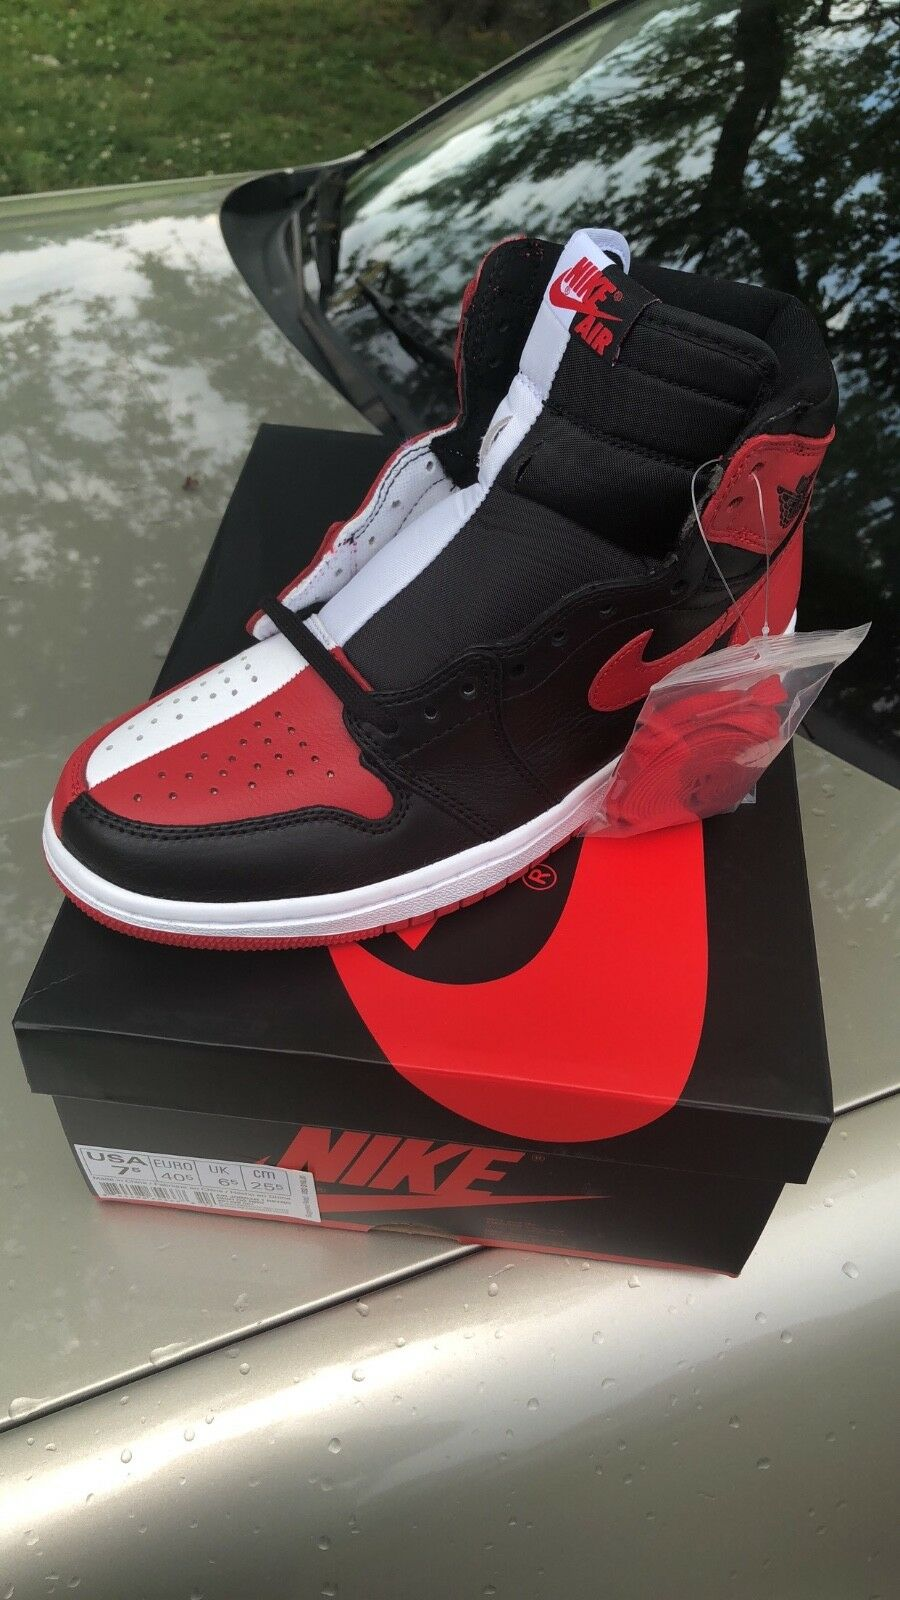 nike retro 1's half and halfs 2018 EXCLUSIVE Release New shoes for men and women, limited time discount